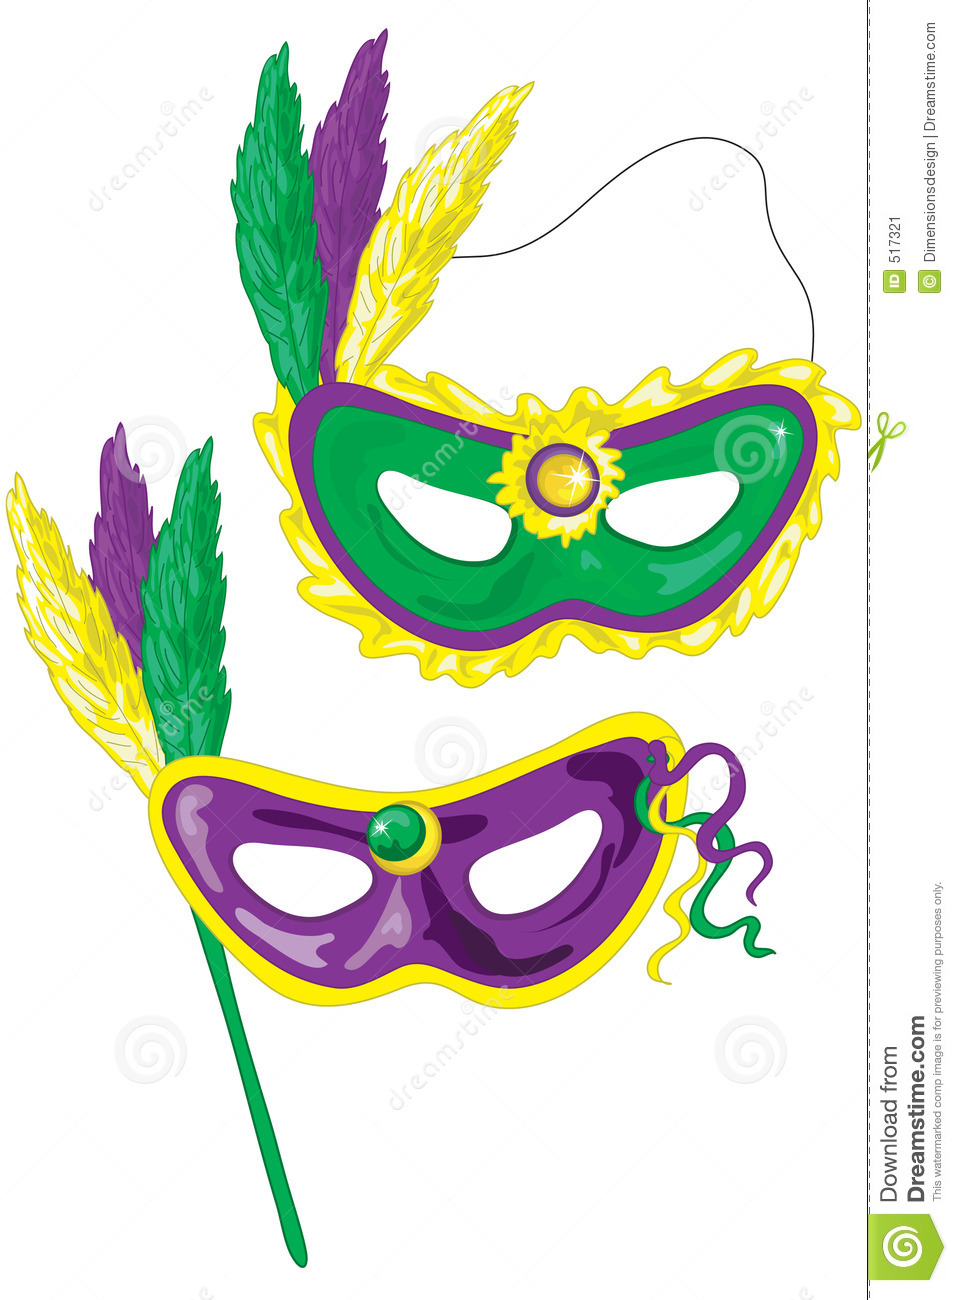 Mardi Gras masks. Mardi Gras masks. Mardi Gras Mask Clipart